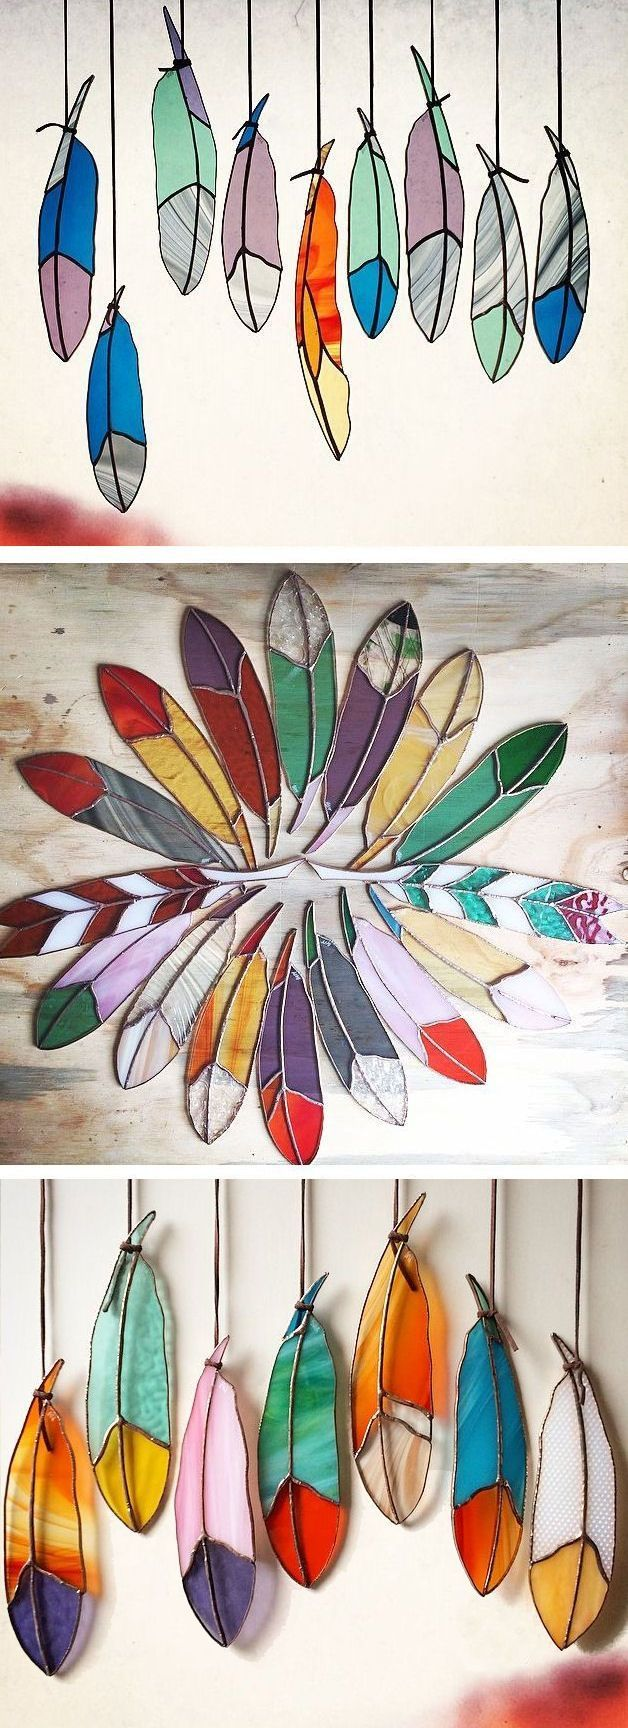 Stained Glass Feathers ❤︎                                                                                                                                                      More